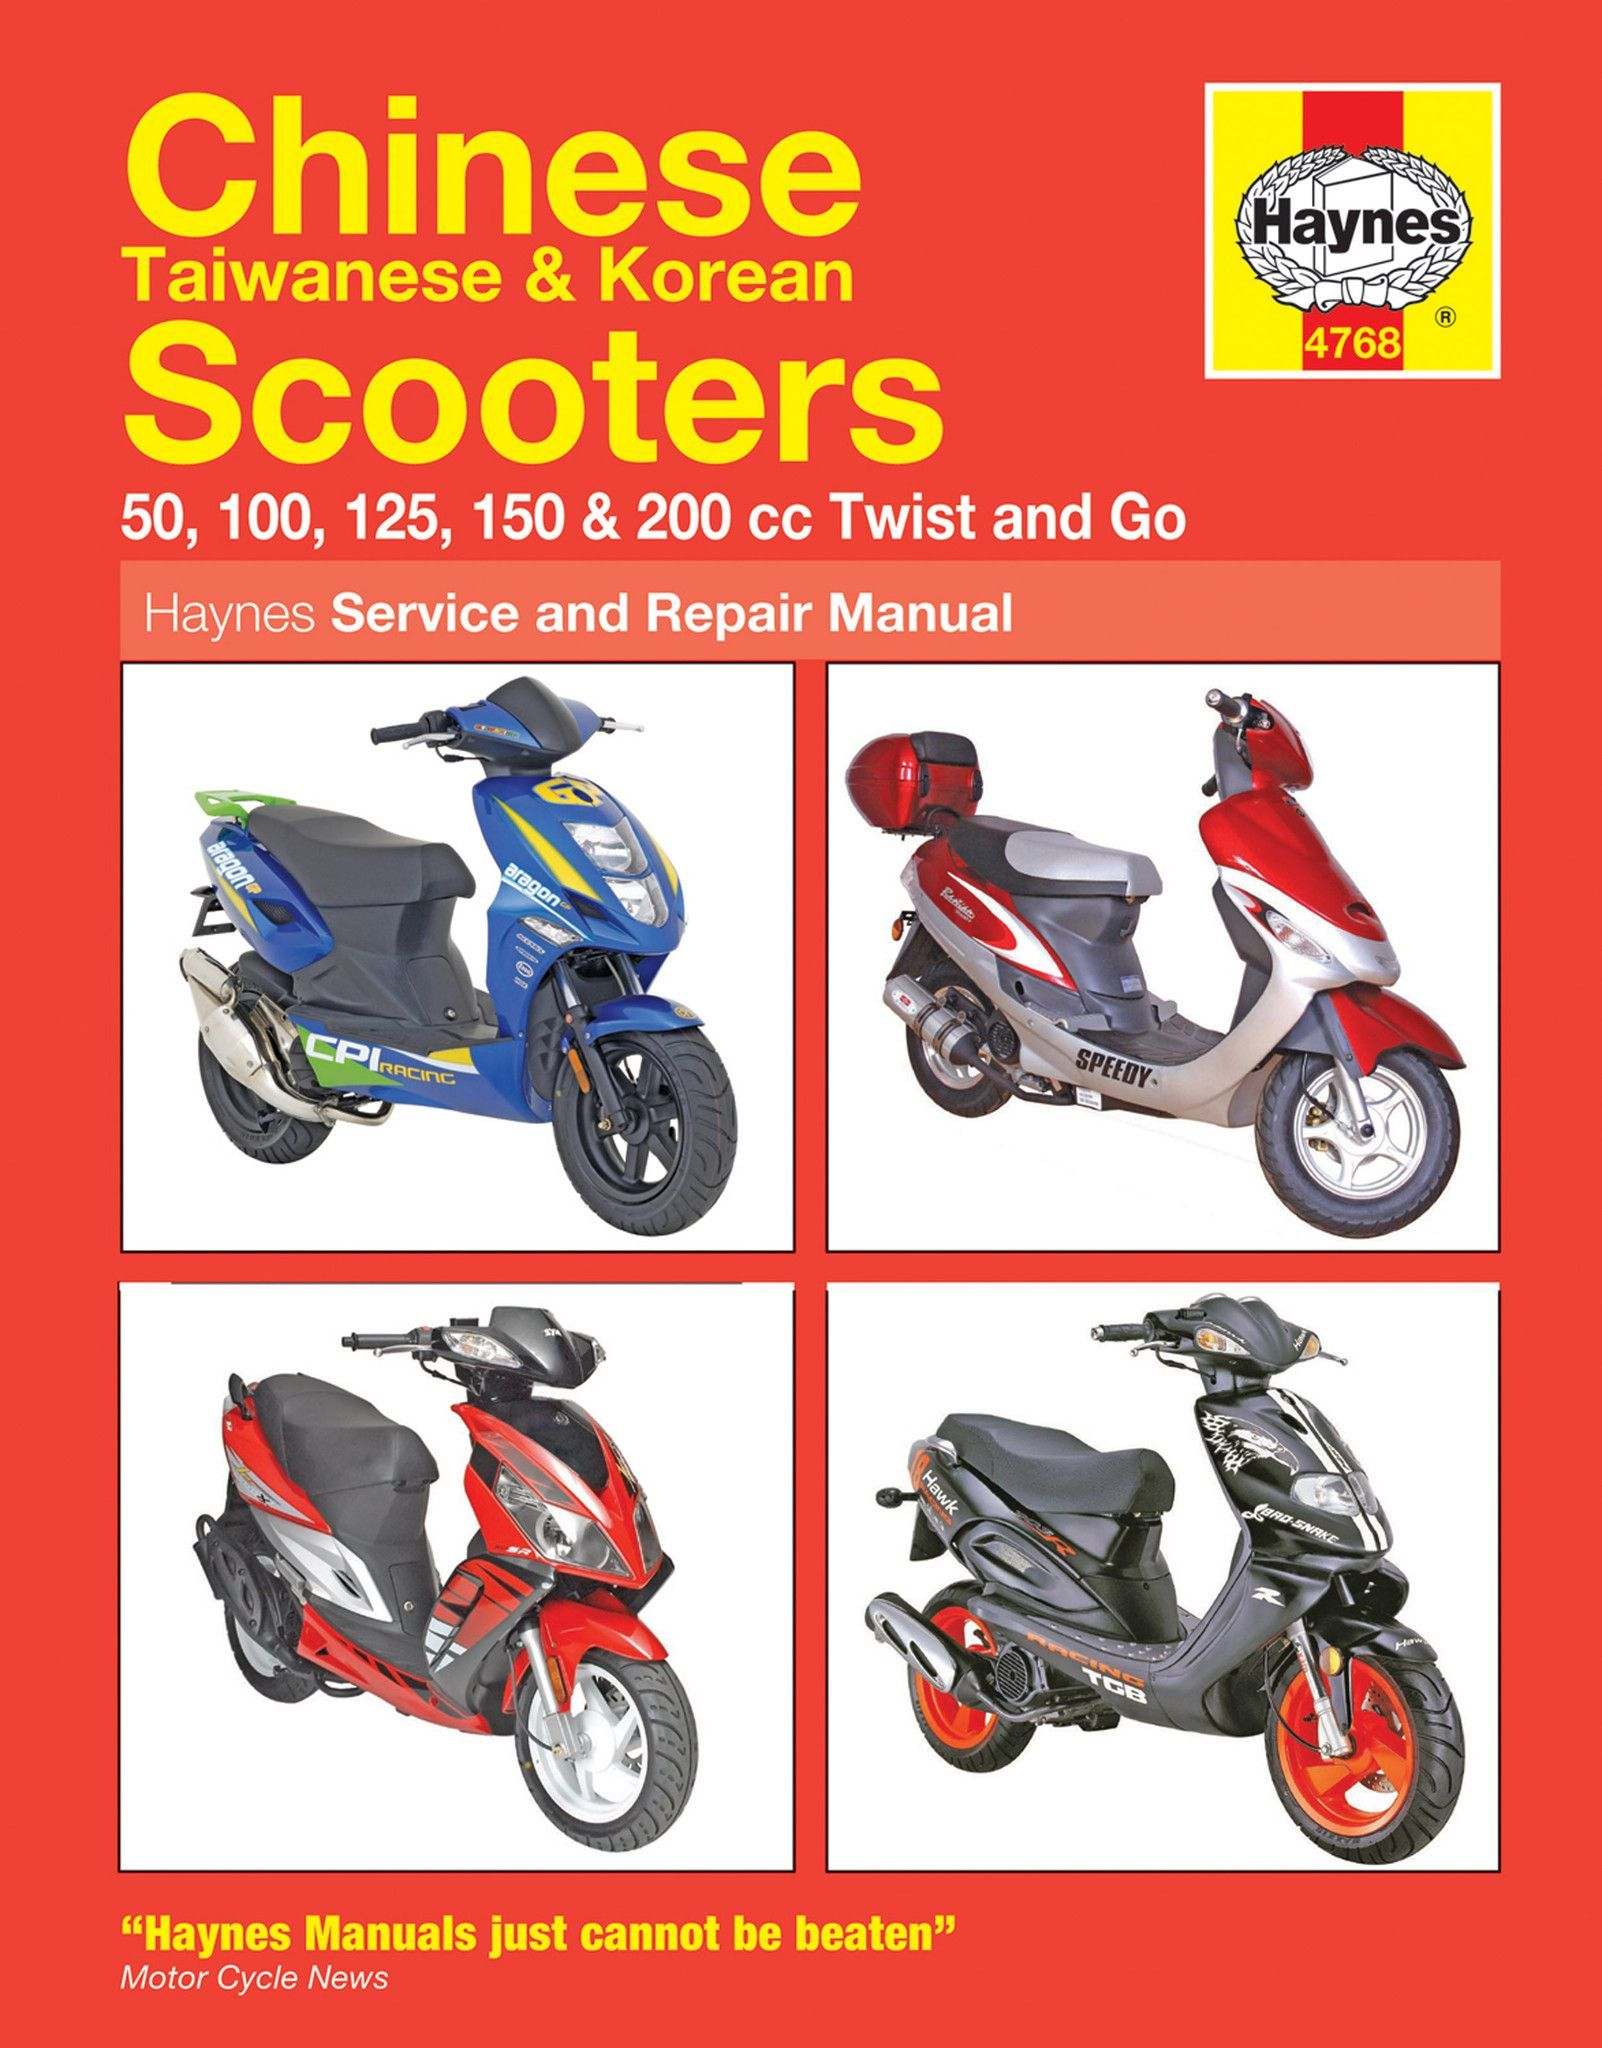 haynes m4768 repair manual for 2004 14 chinese taiwanese and korean rh pinterest com Moped Scooters 50Cc New 50Cc Scooter